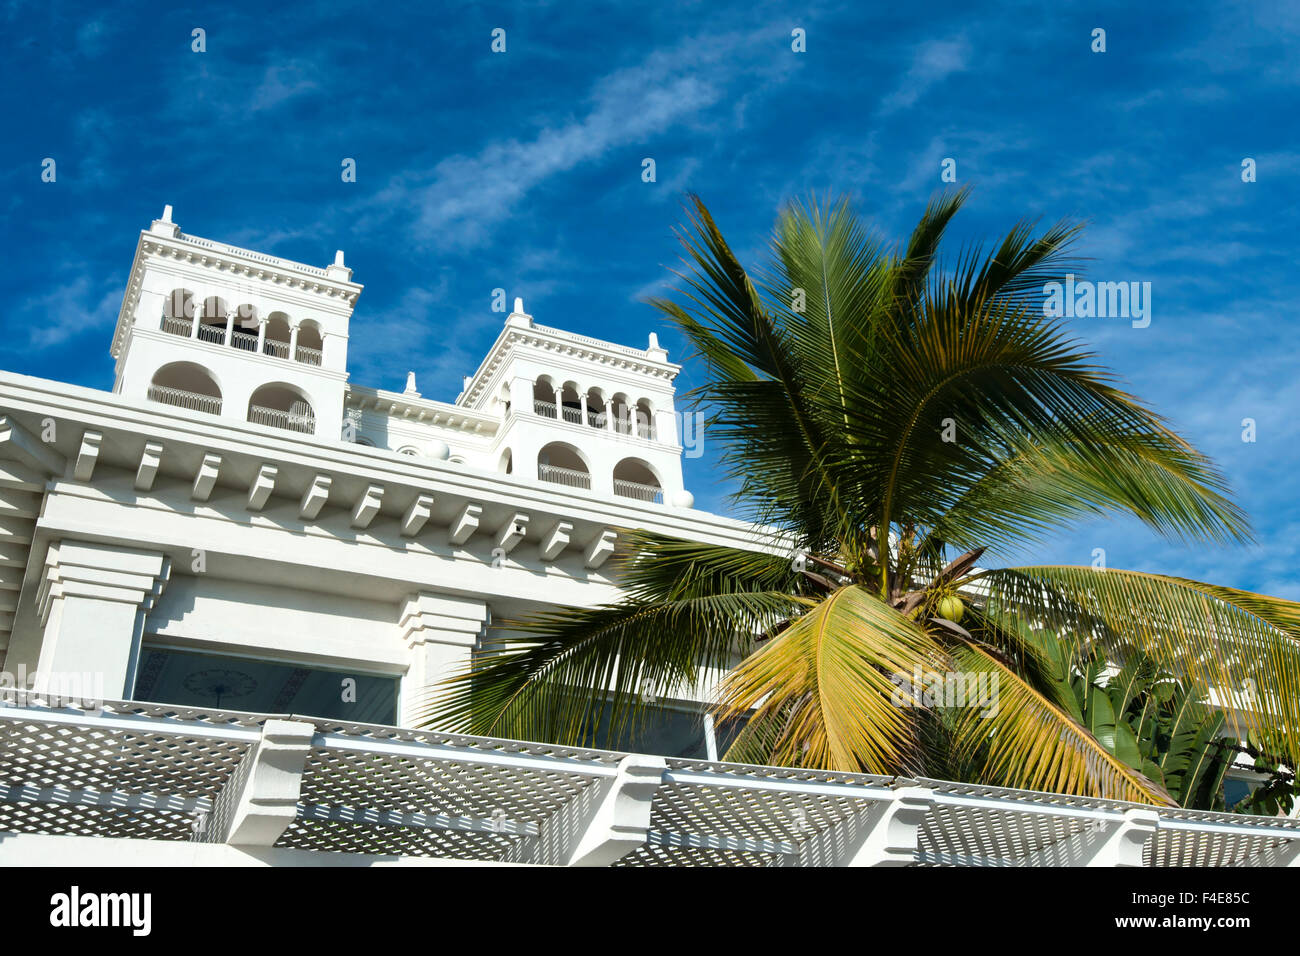 Mexico puerto vallarta the architecture of the hotel riu palace the architecture of the hotel riu palace pacifico thecheapjerseys Choice Image